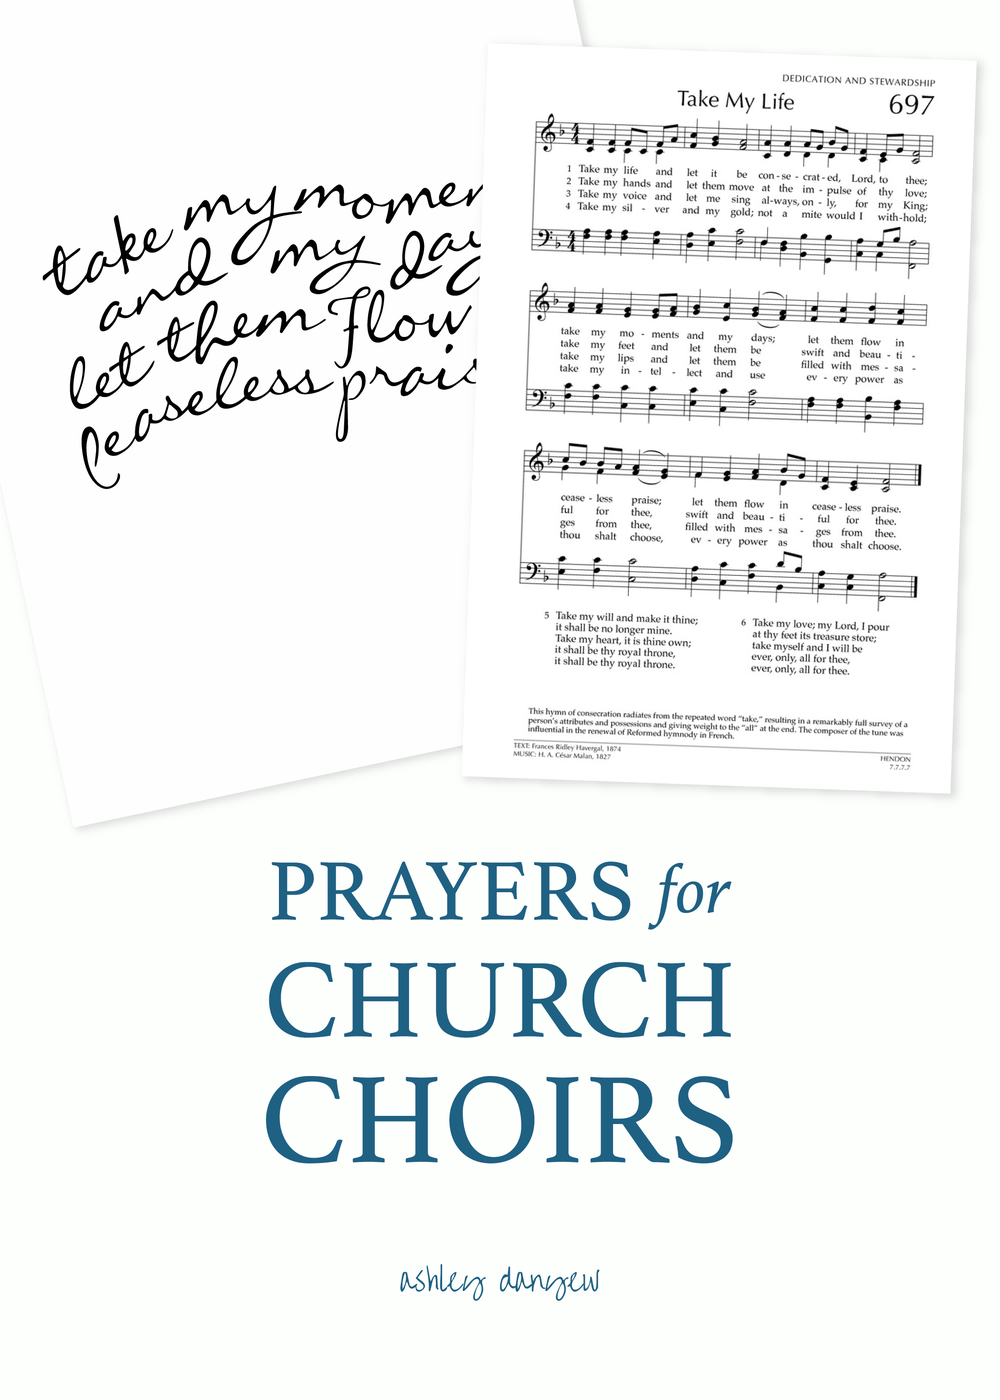 Prayers for Church Choirs-01.png